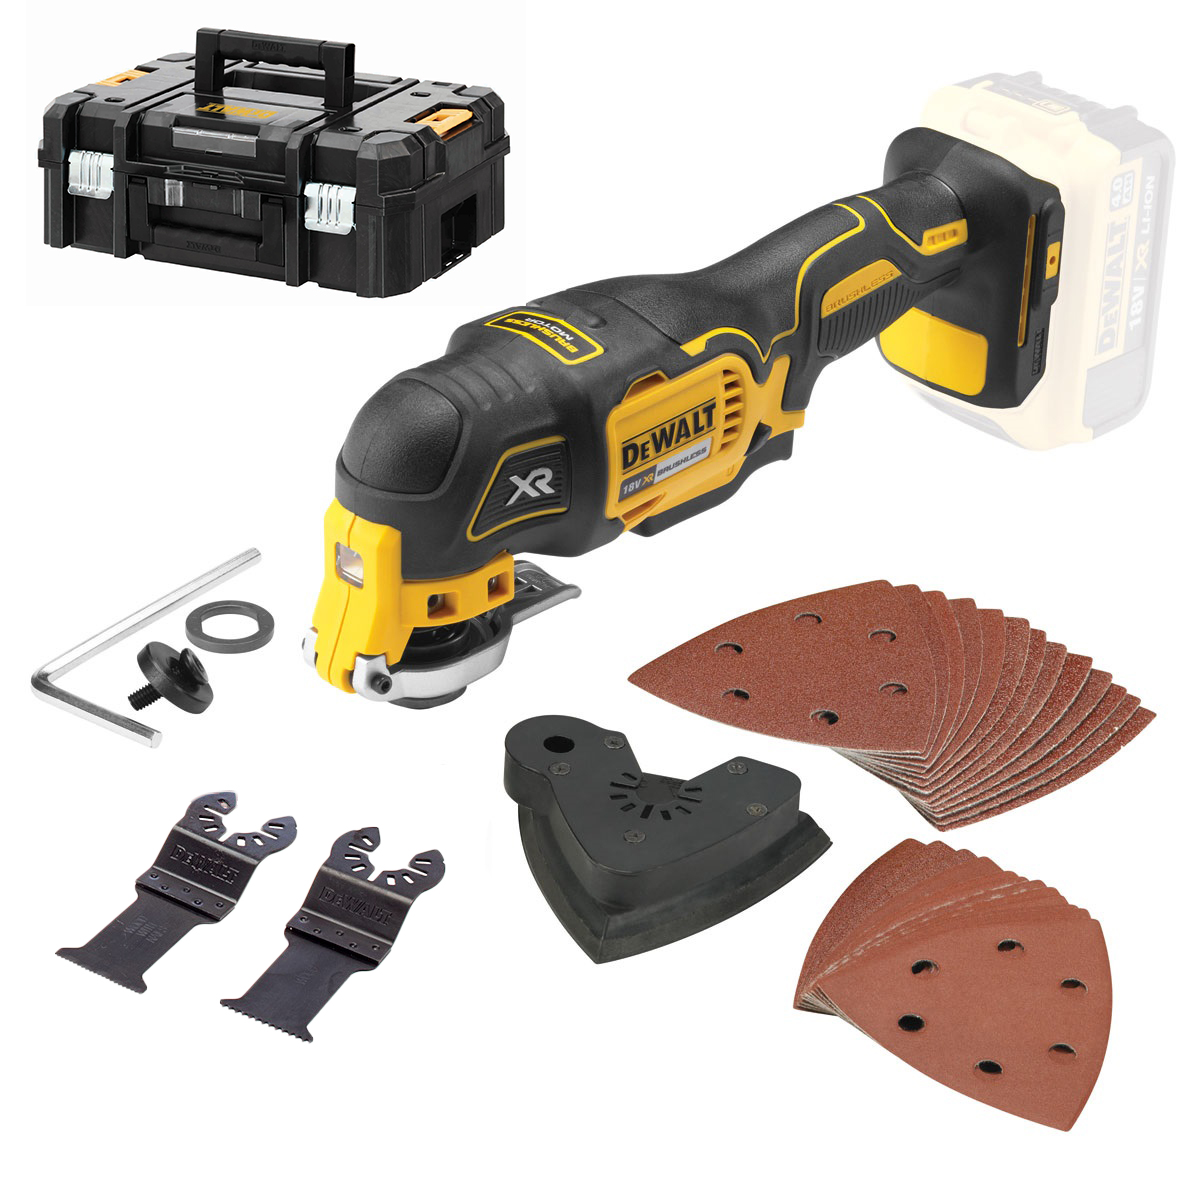 DeWALT DCS355NT 18V Li - Ion accu Multitool + 29 delige accessoire body in TSTAK - koolborstelloos